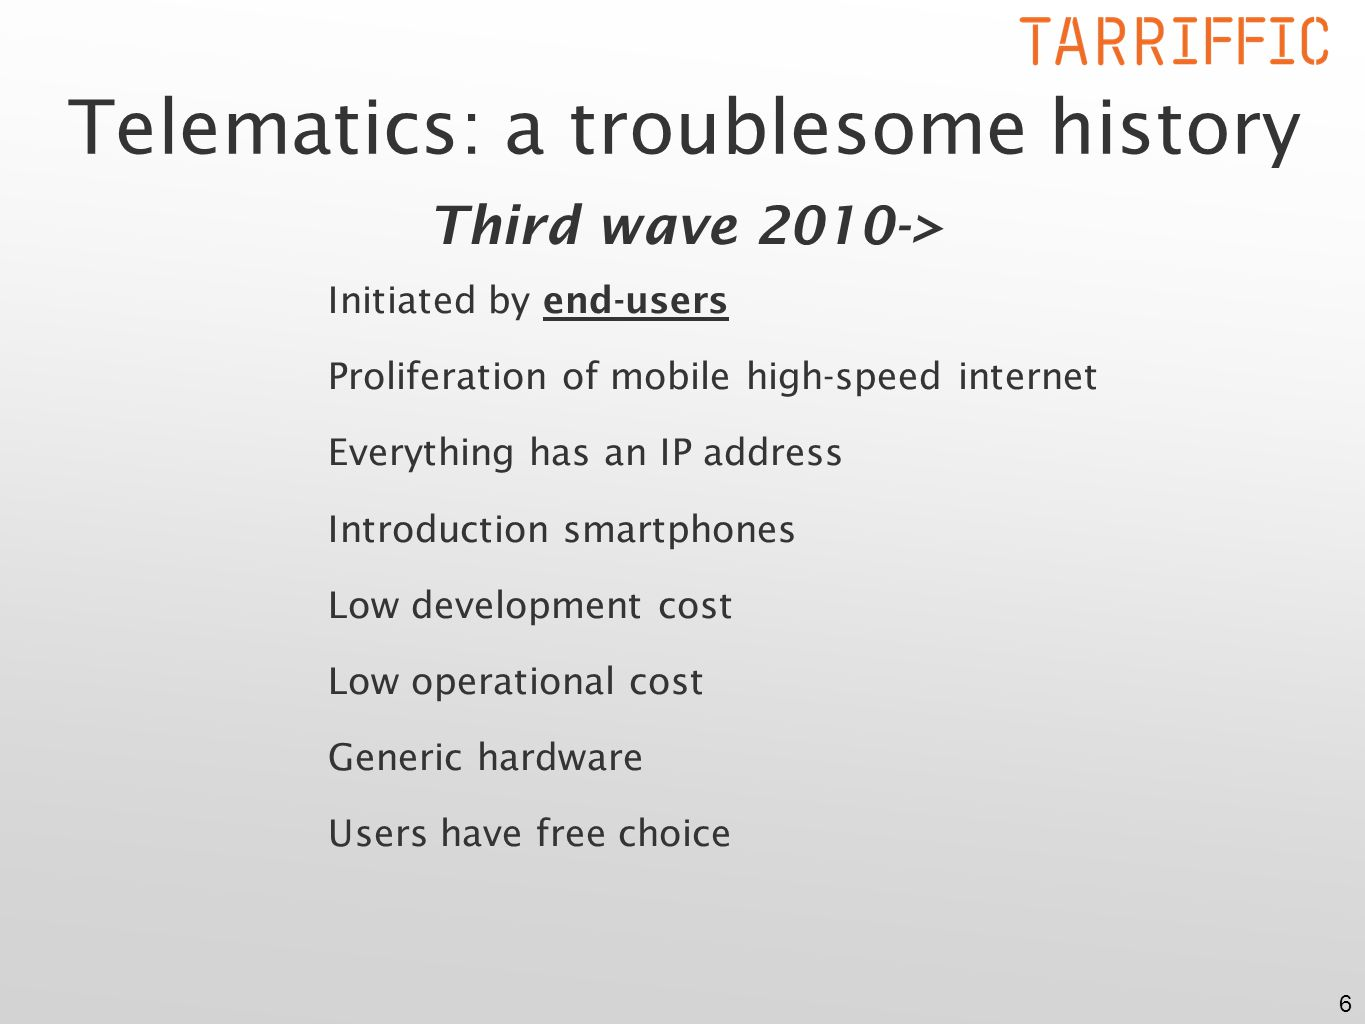 6 Telematics: a troublesome history Third wave 2010-> Initiated by end-users Proliferation of mobile high-speed internet Everything has an IP address Introduction smartphones Low development cost Low operational cost Generic hardware Users have free choice